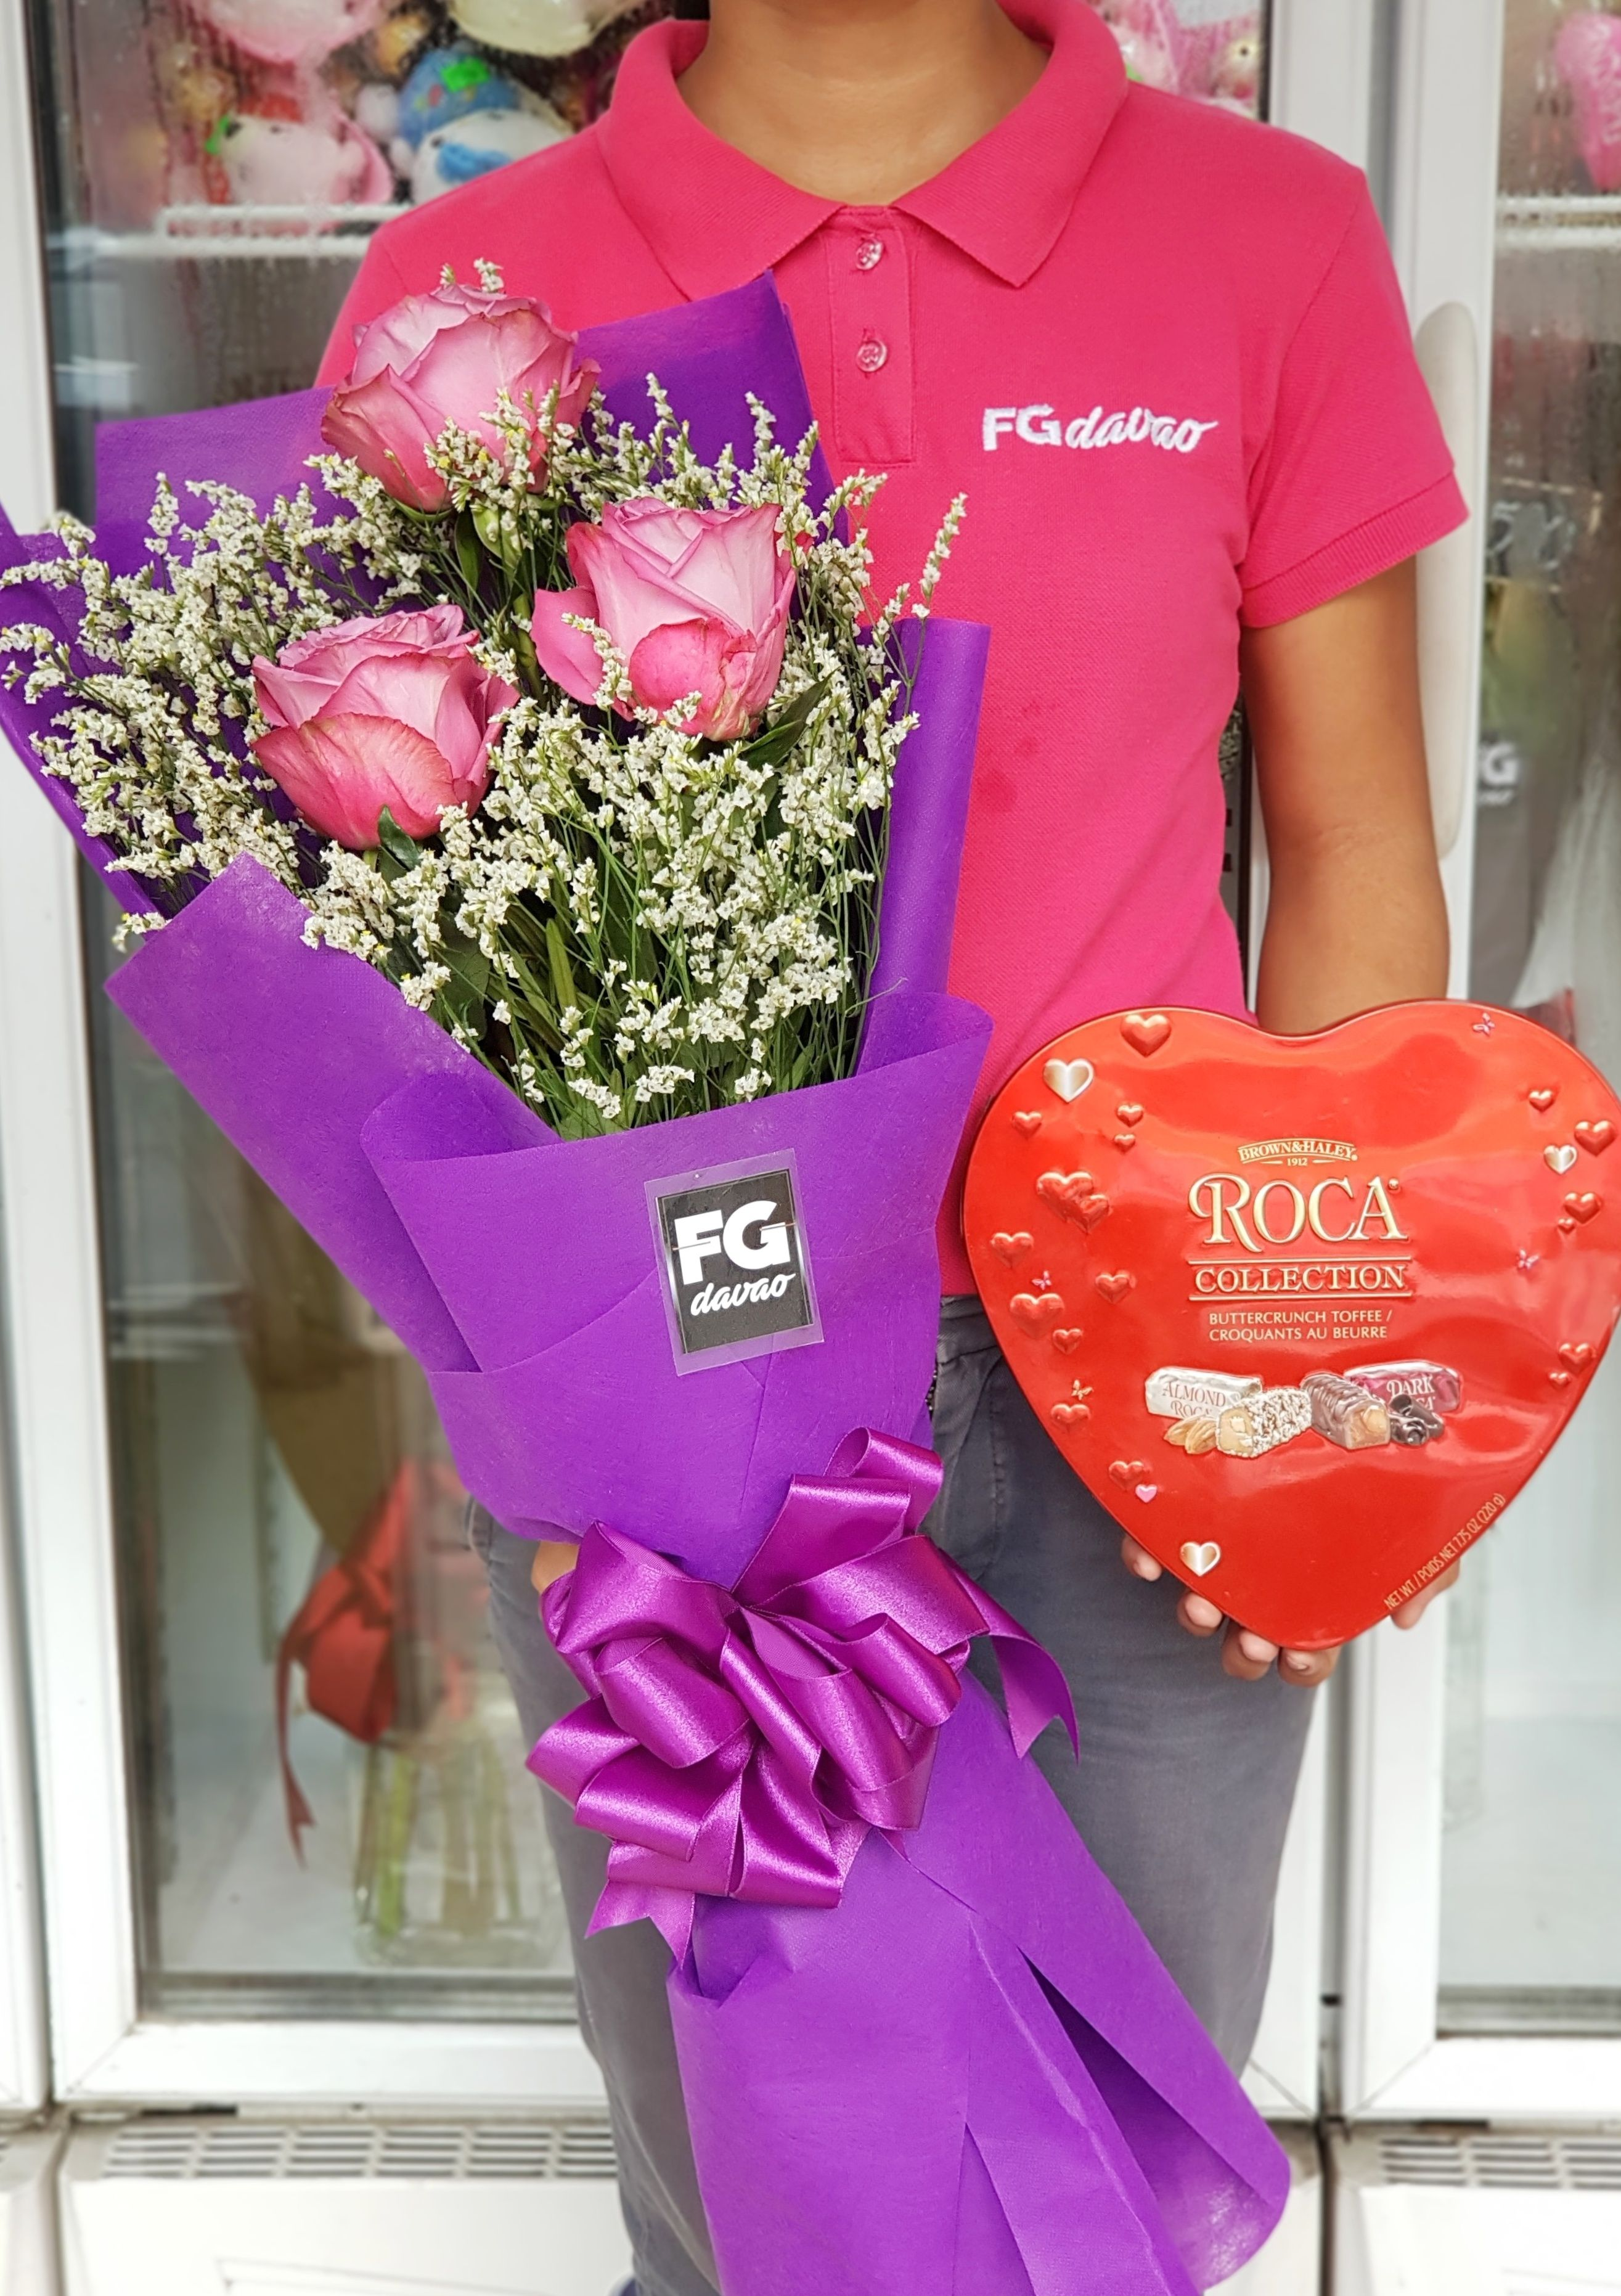 Send Flowers Price List Www Fgdavao Com Fb Page Fg Davao Ig Page Fg Davao Store Address 123 Lopez Jaena St Dav Online Flower Shop Sand Gifts Happy Gifts